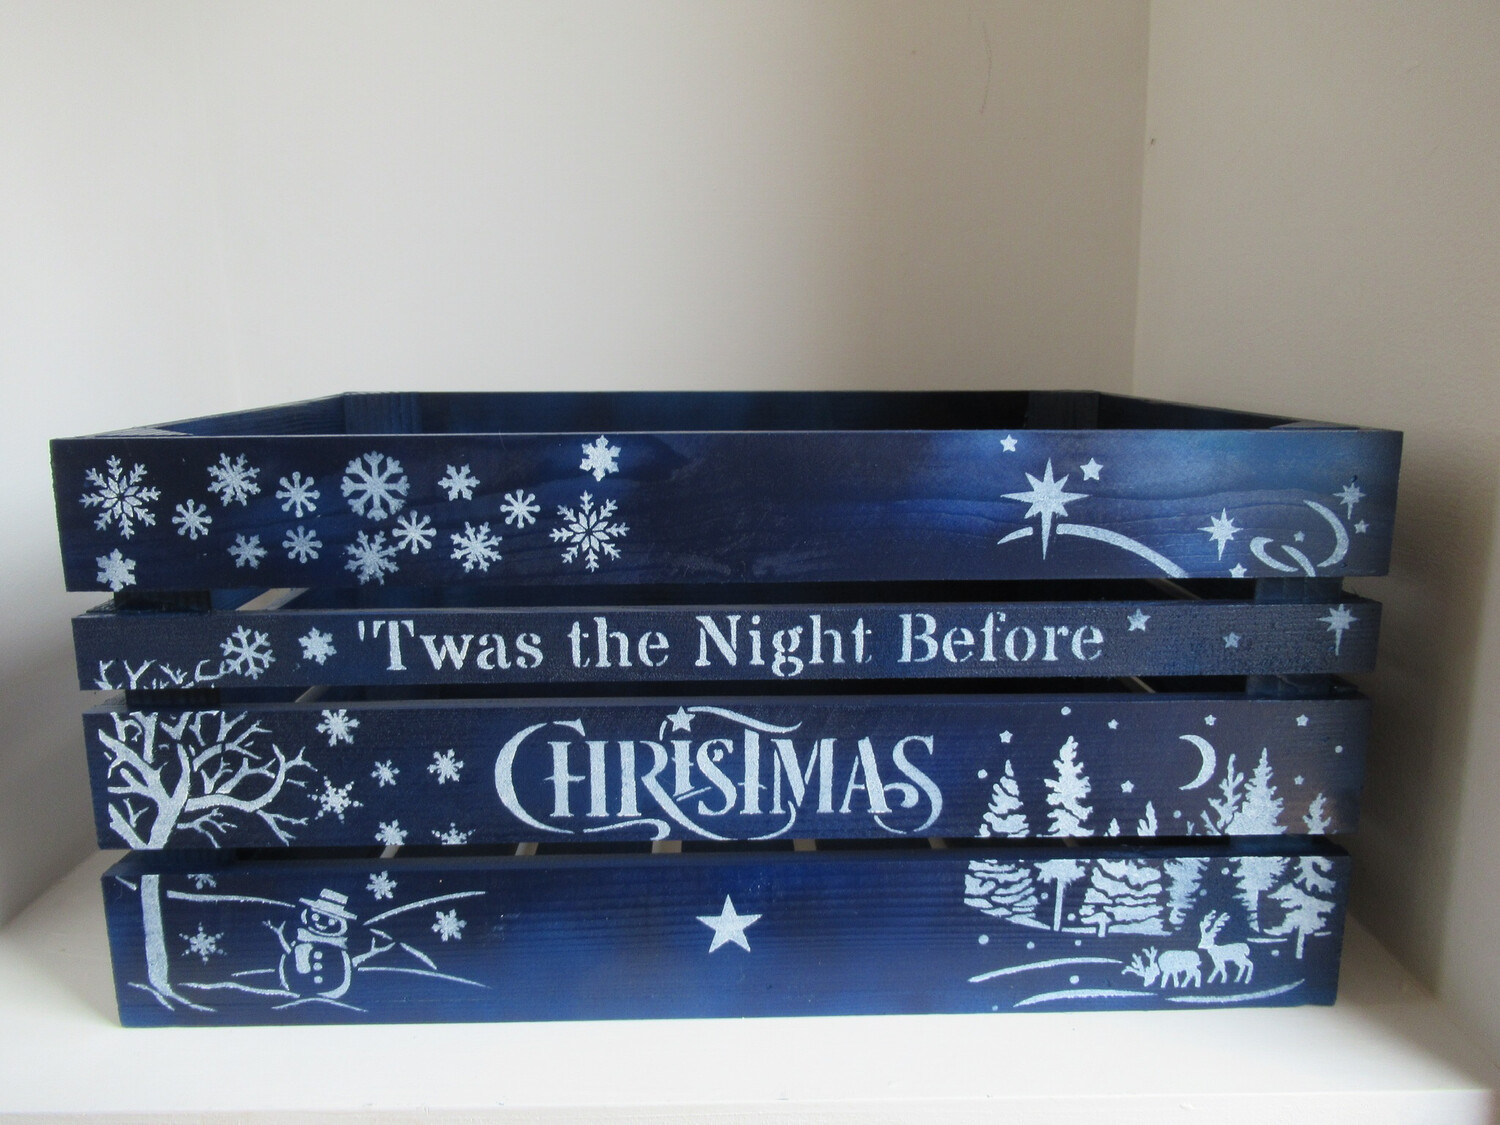 Twas the Night Before Christmas Personalised Large Christmas Crate